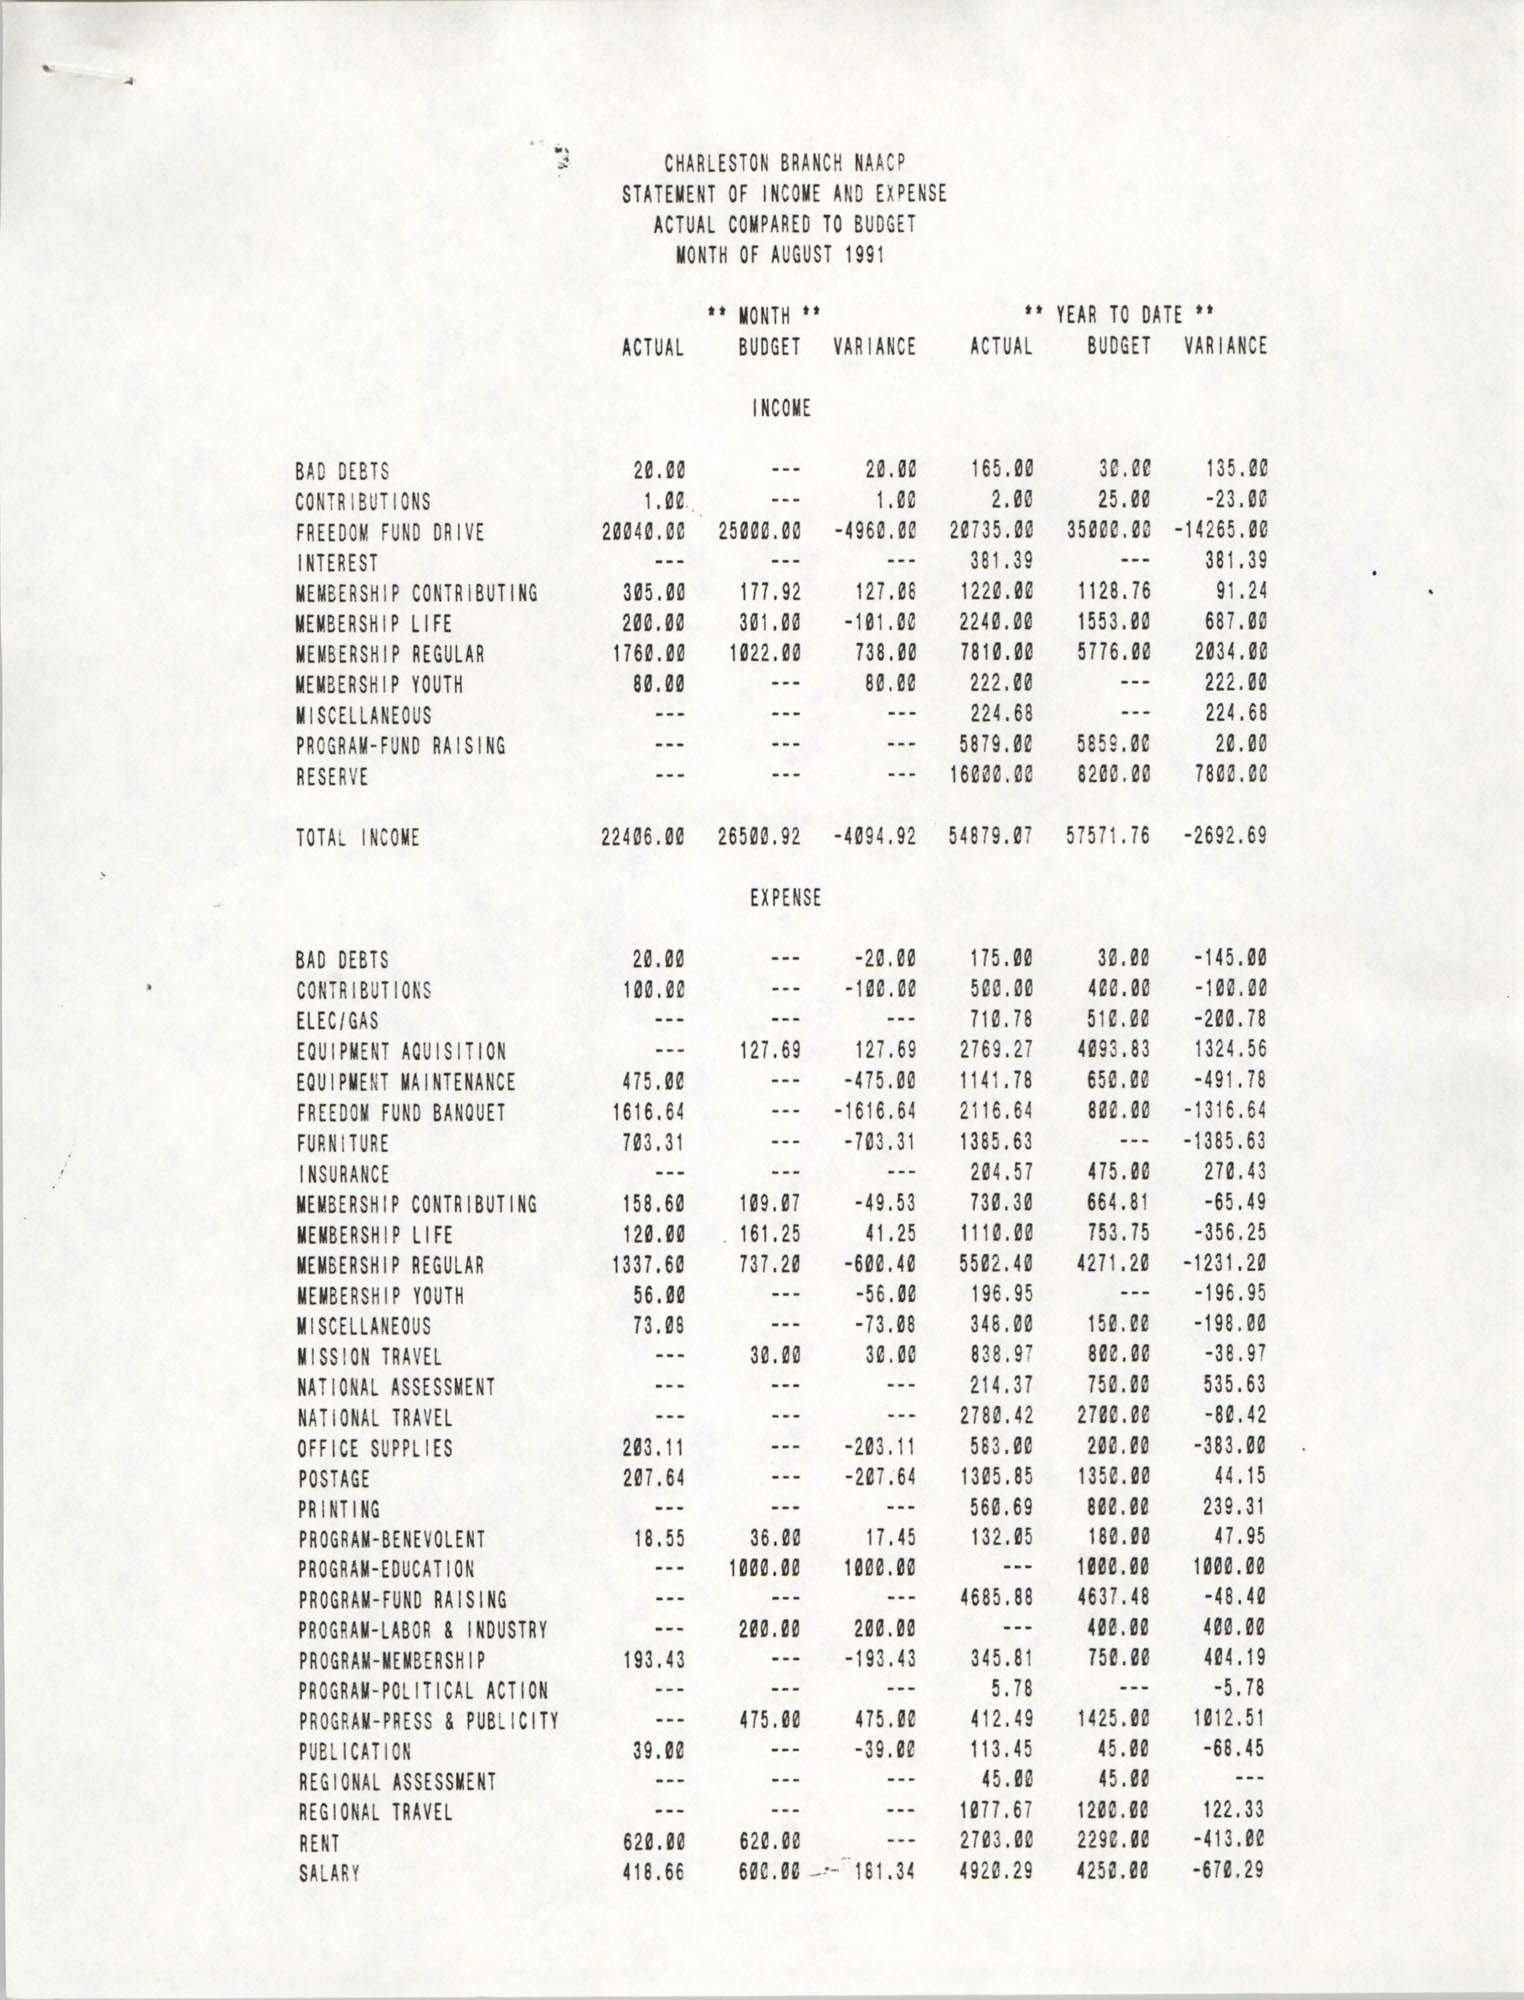 Charleston Branch of the NAACP Statement of Income and Expense, August 1991, Page 1